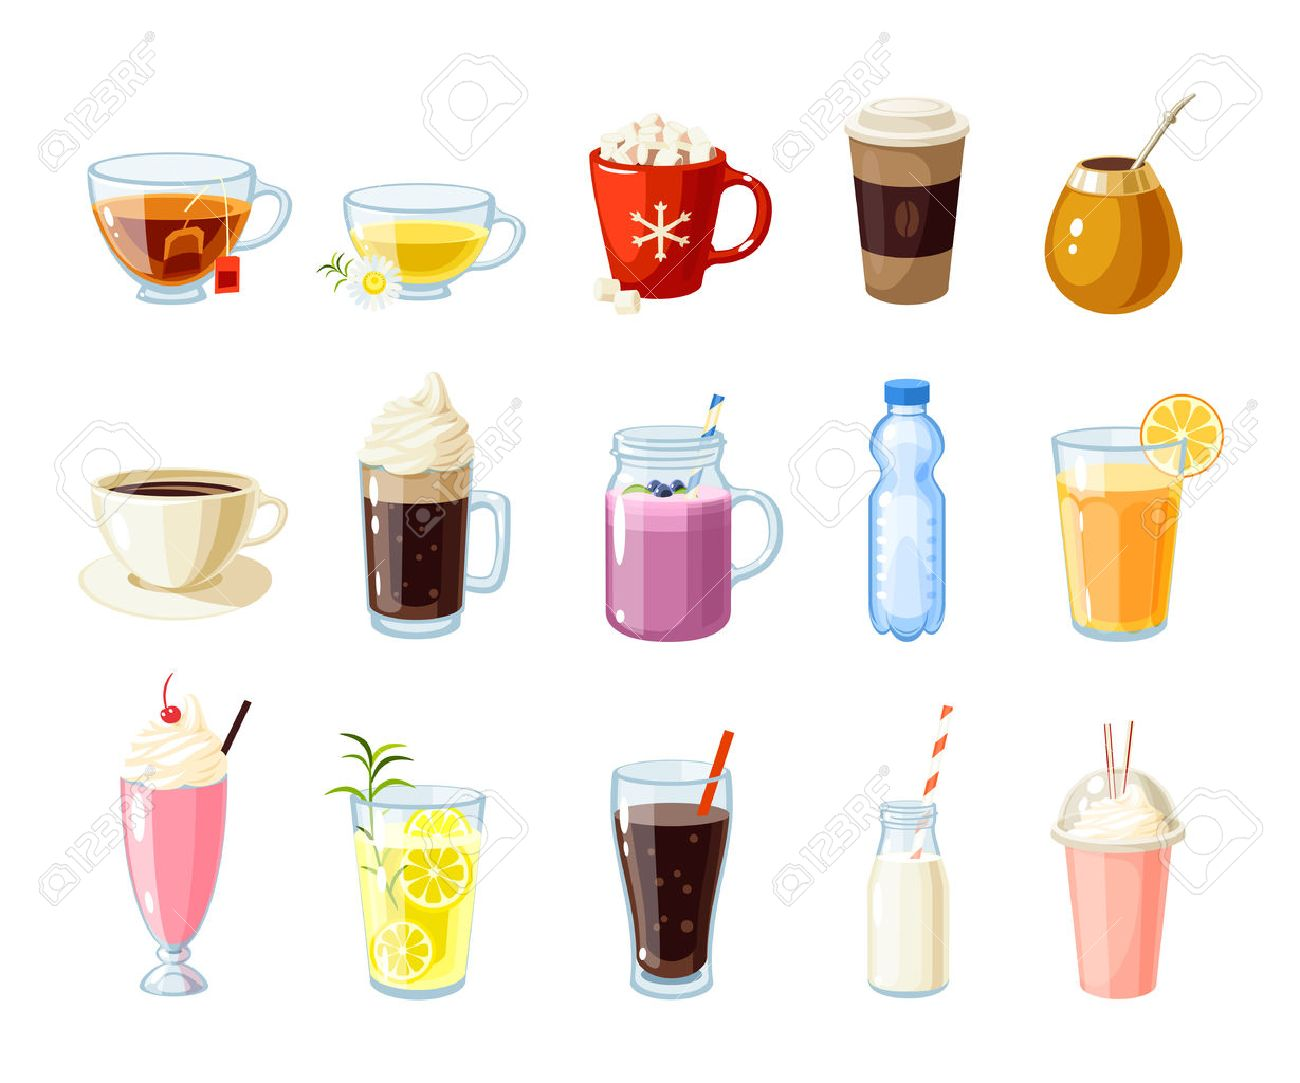 Set of cartoon food: non-alcoholic beverages - tea, herbal tea, hot chocolate, latte, mate, coffee, root beer, smoothie, juice, milk shake, lemonade and so. Vector illustration, isolated on white. - 56918911